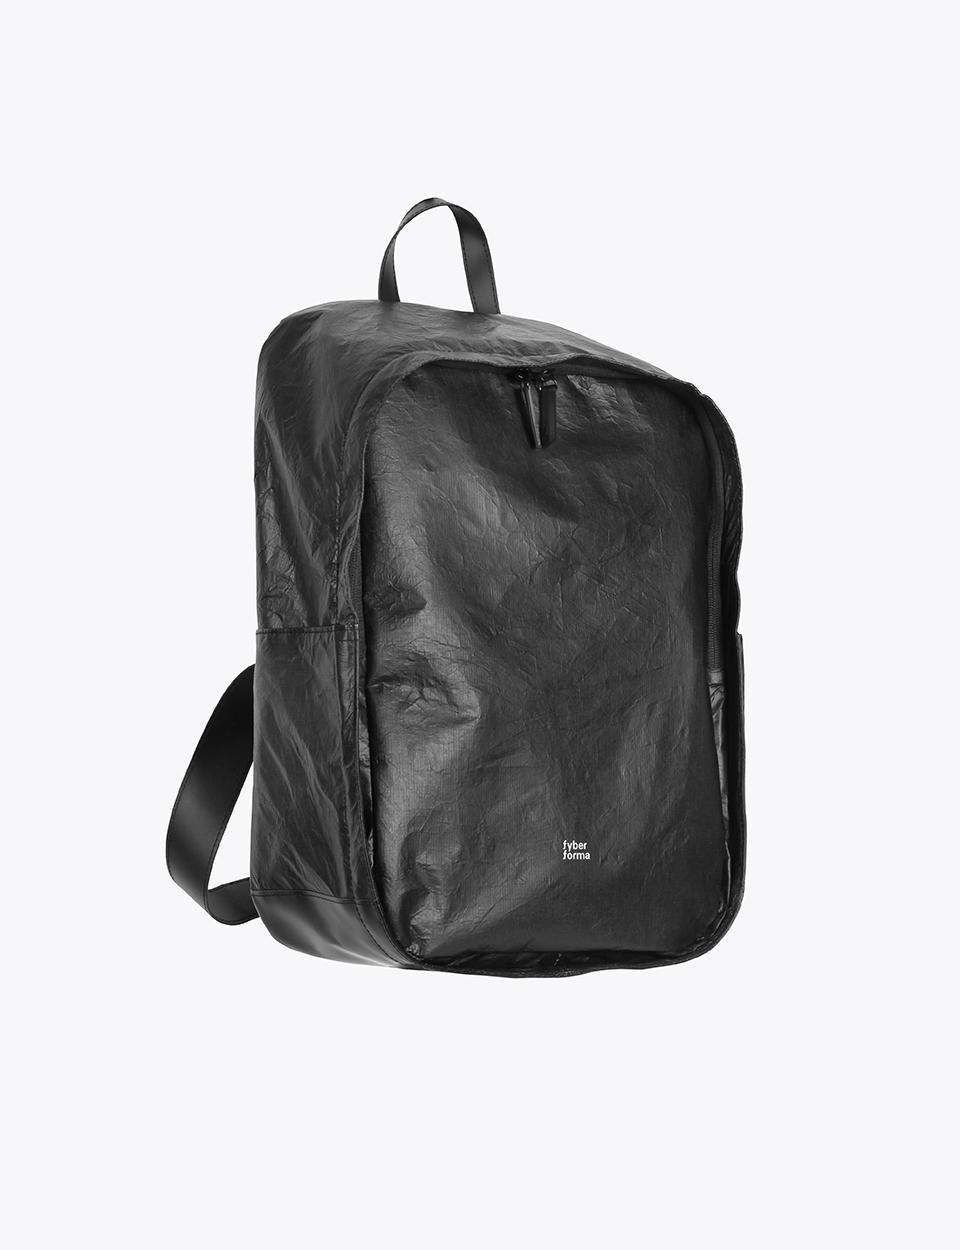 Fyber Forma - C.O.S Backpack